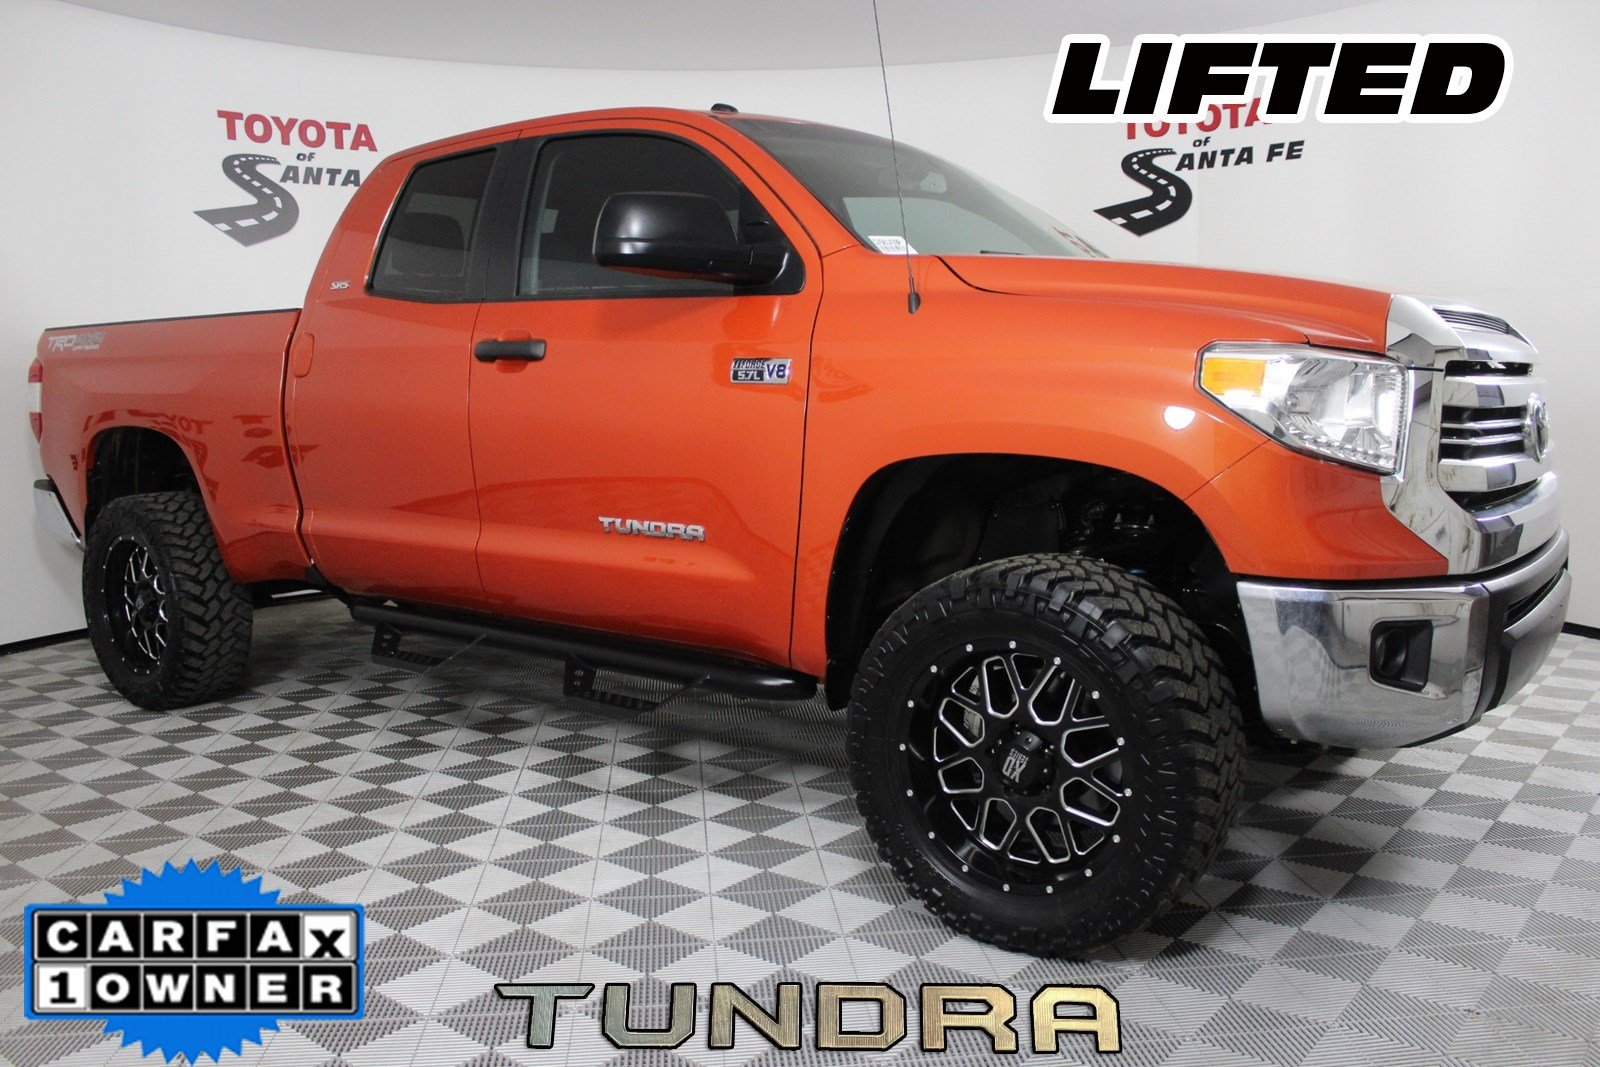 Pre-Owned 2016 Toyota Tundra SR5 4WD GX561439P